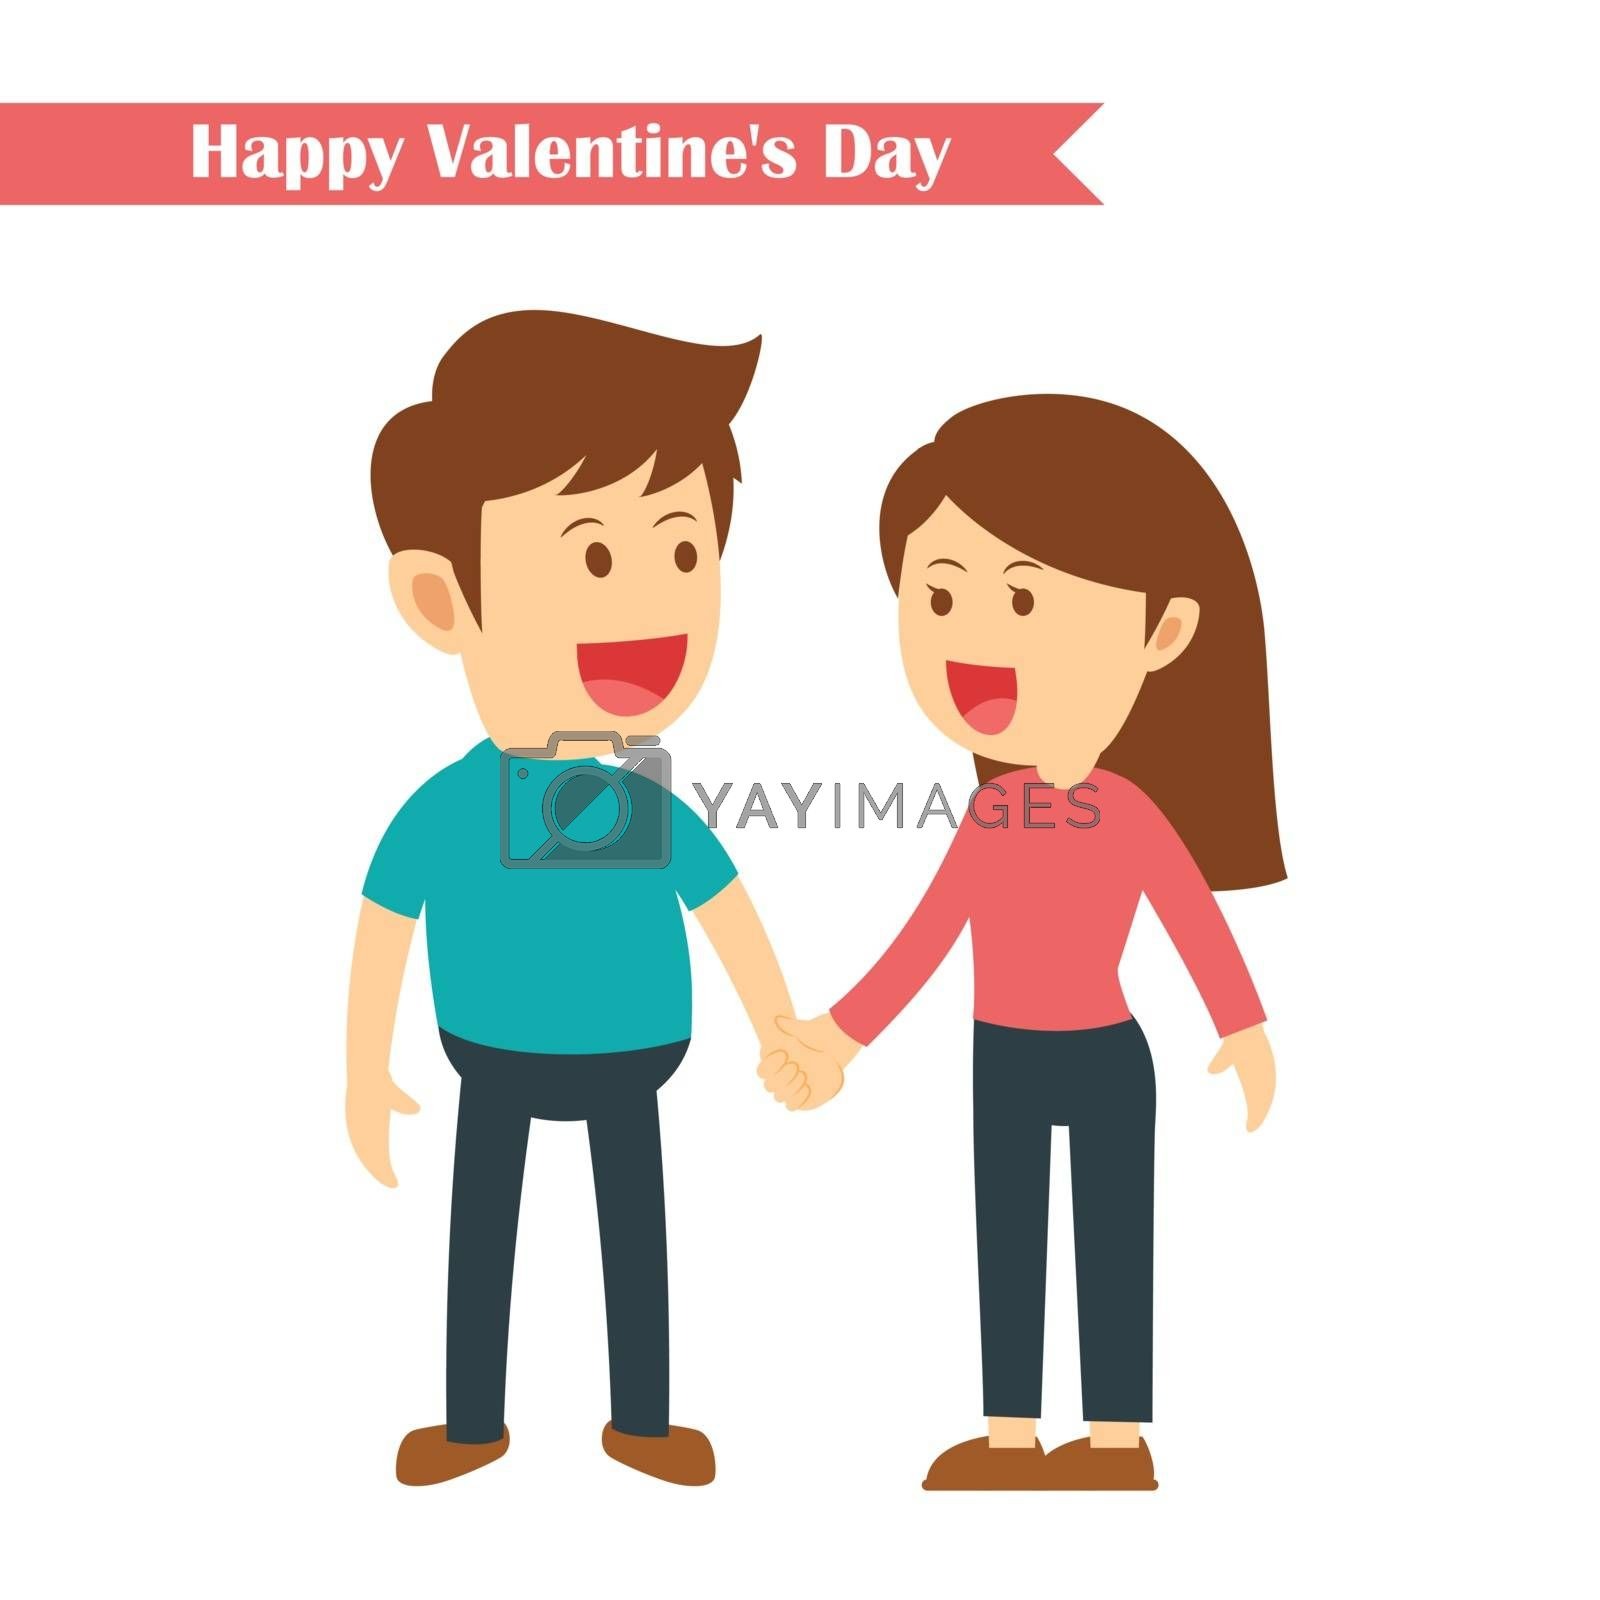 characters couples holding hands in happy valentines day isolated on white background